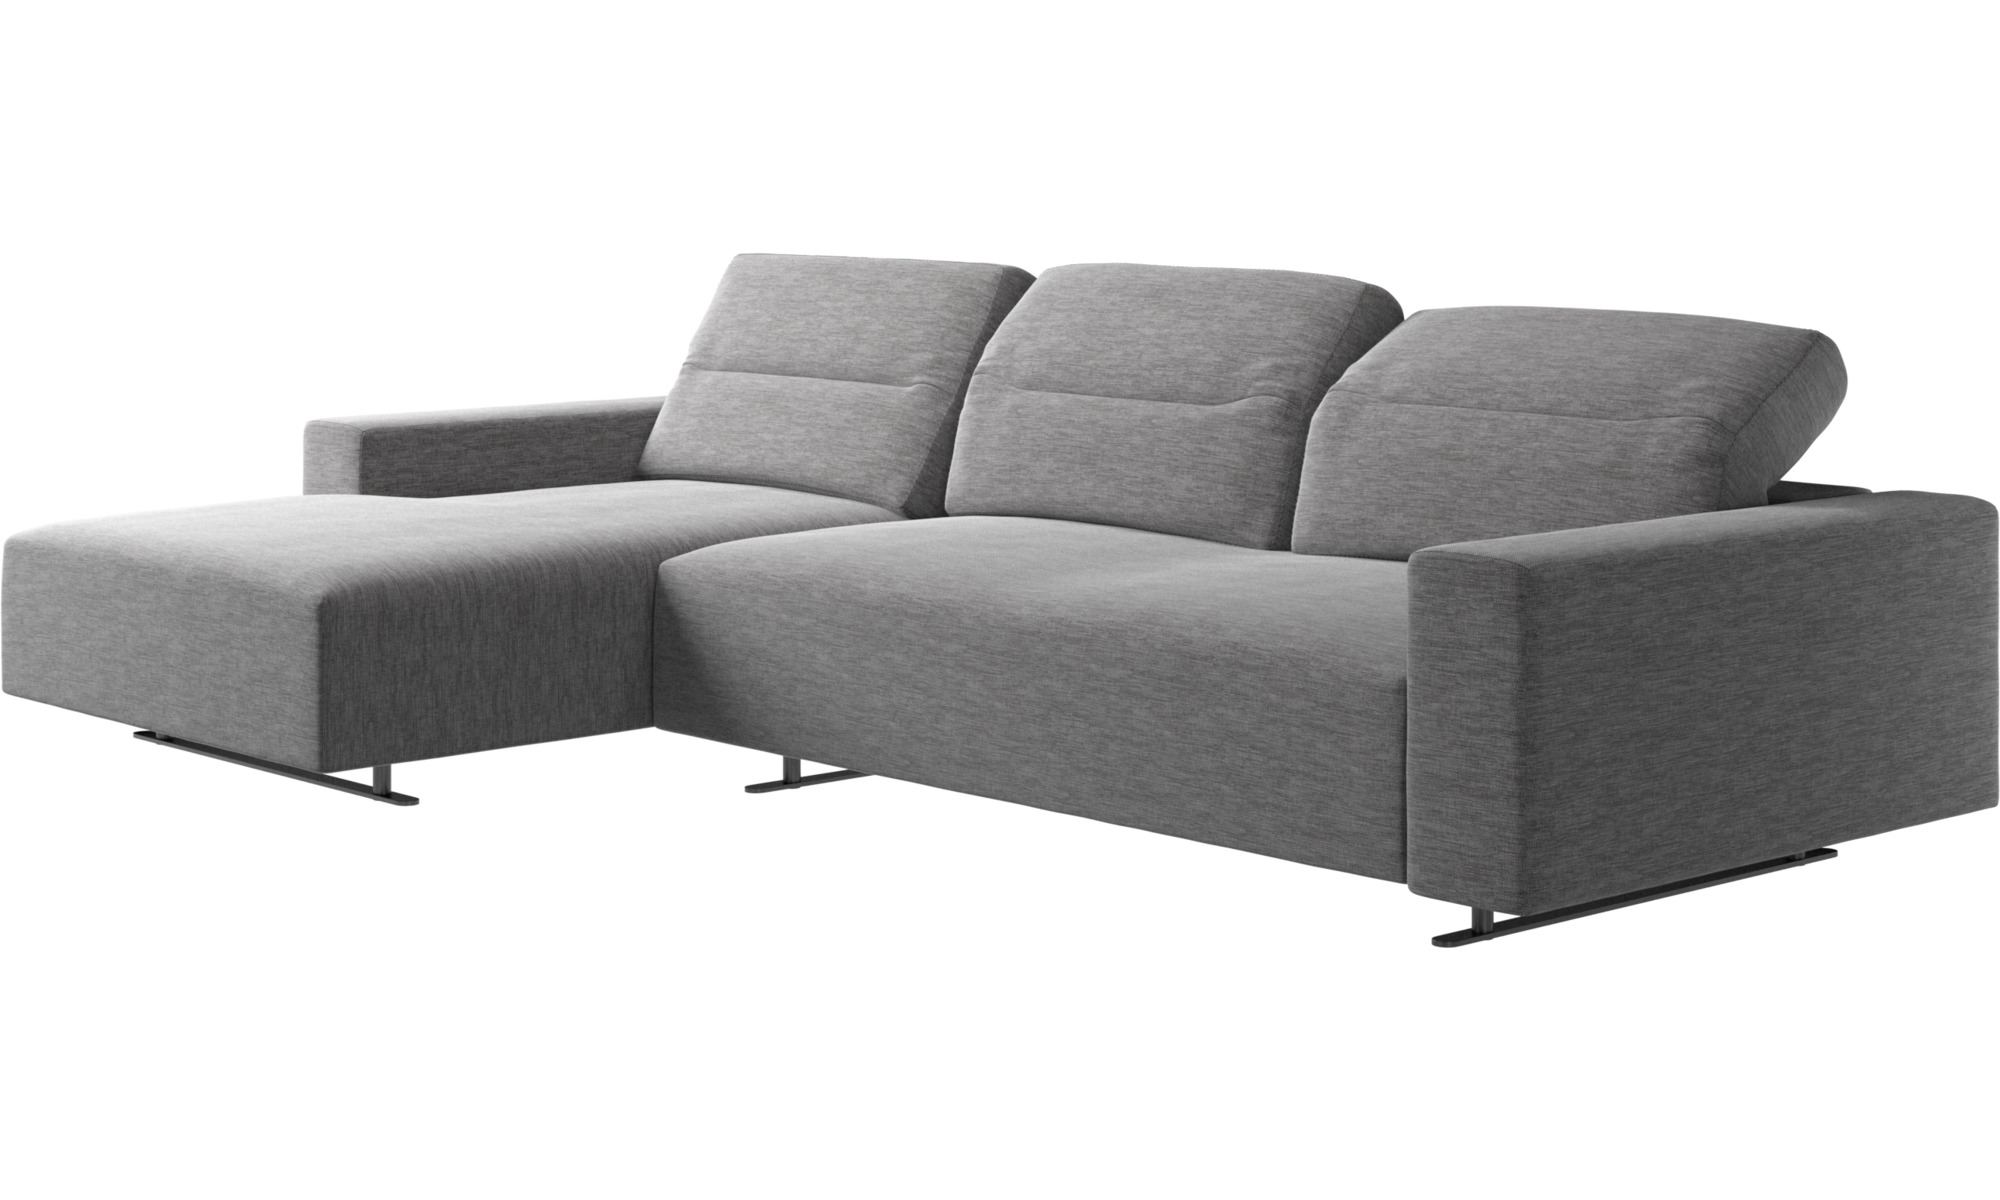 chaise lounge sofas hampton sofa with adjustable back and resting unit left side boconcept. Black Bedroom Furniture Sets. Home Design Ideas